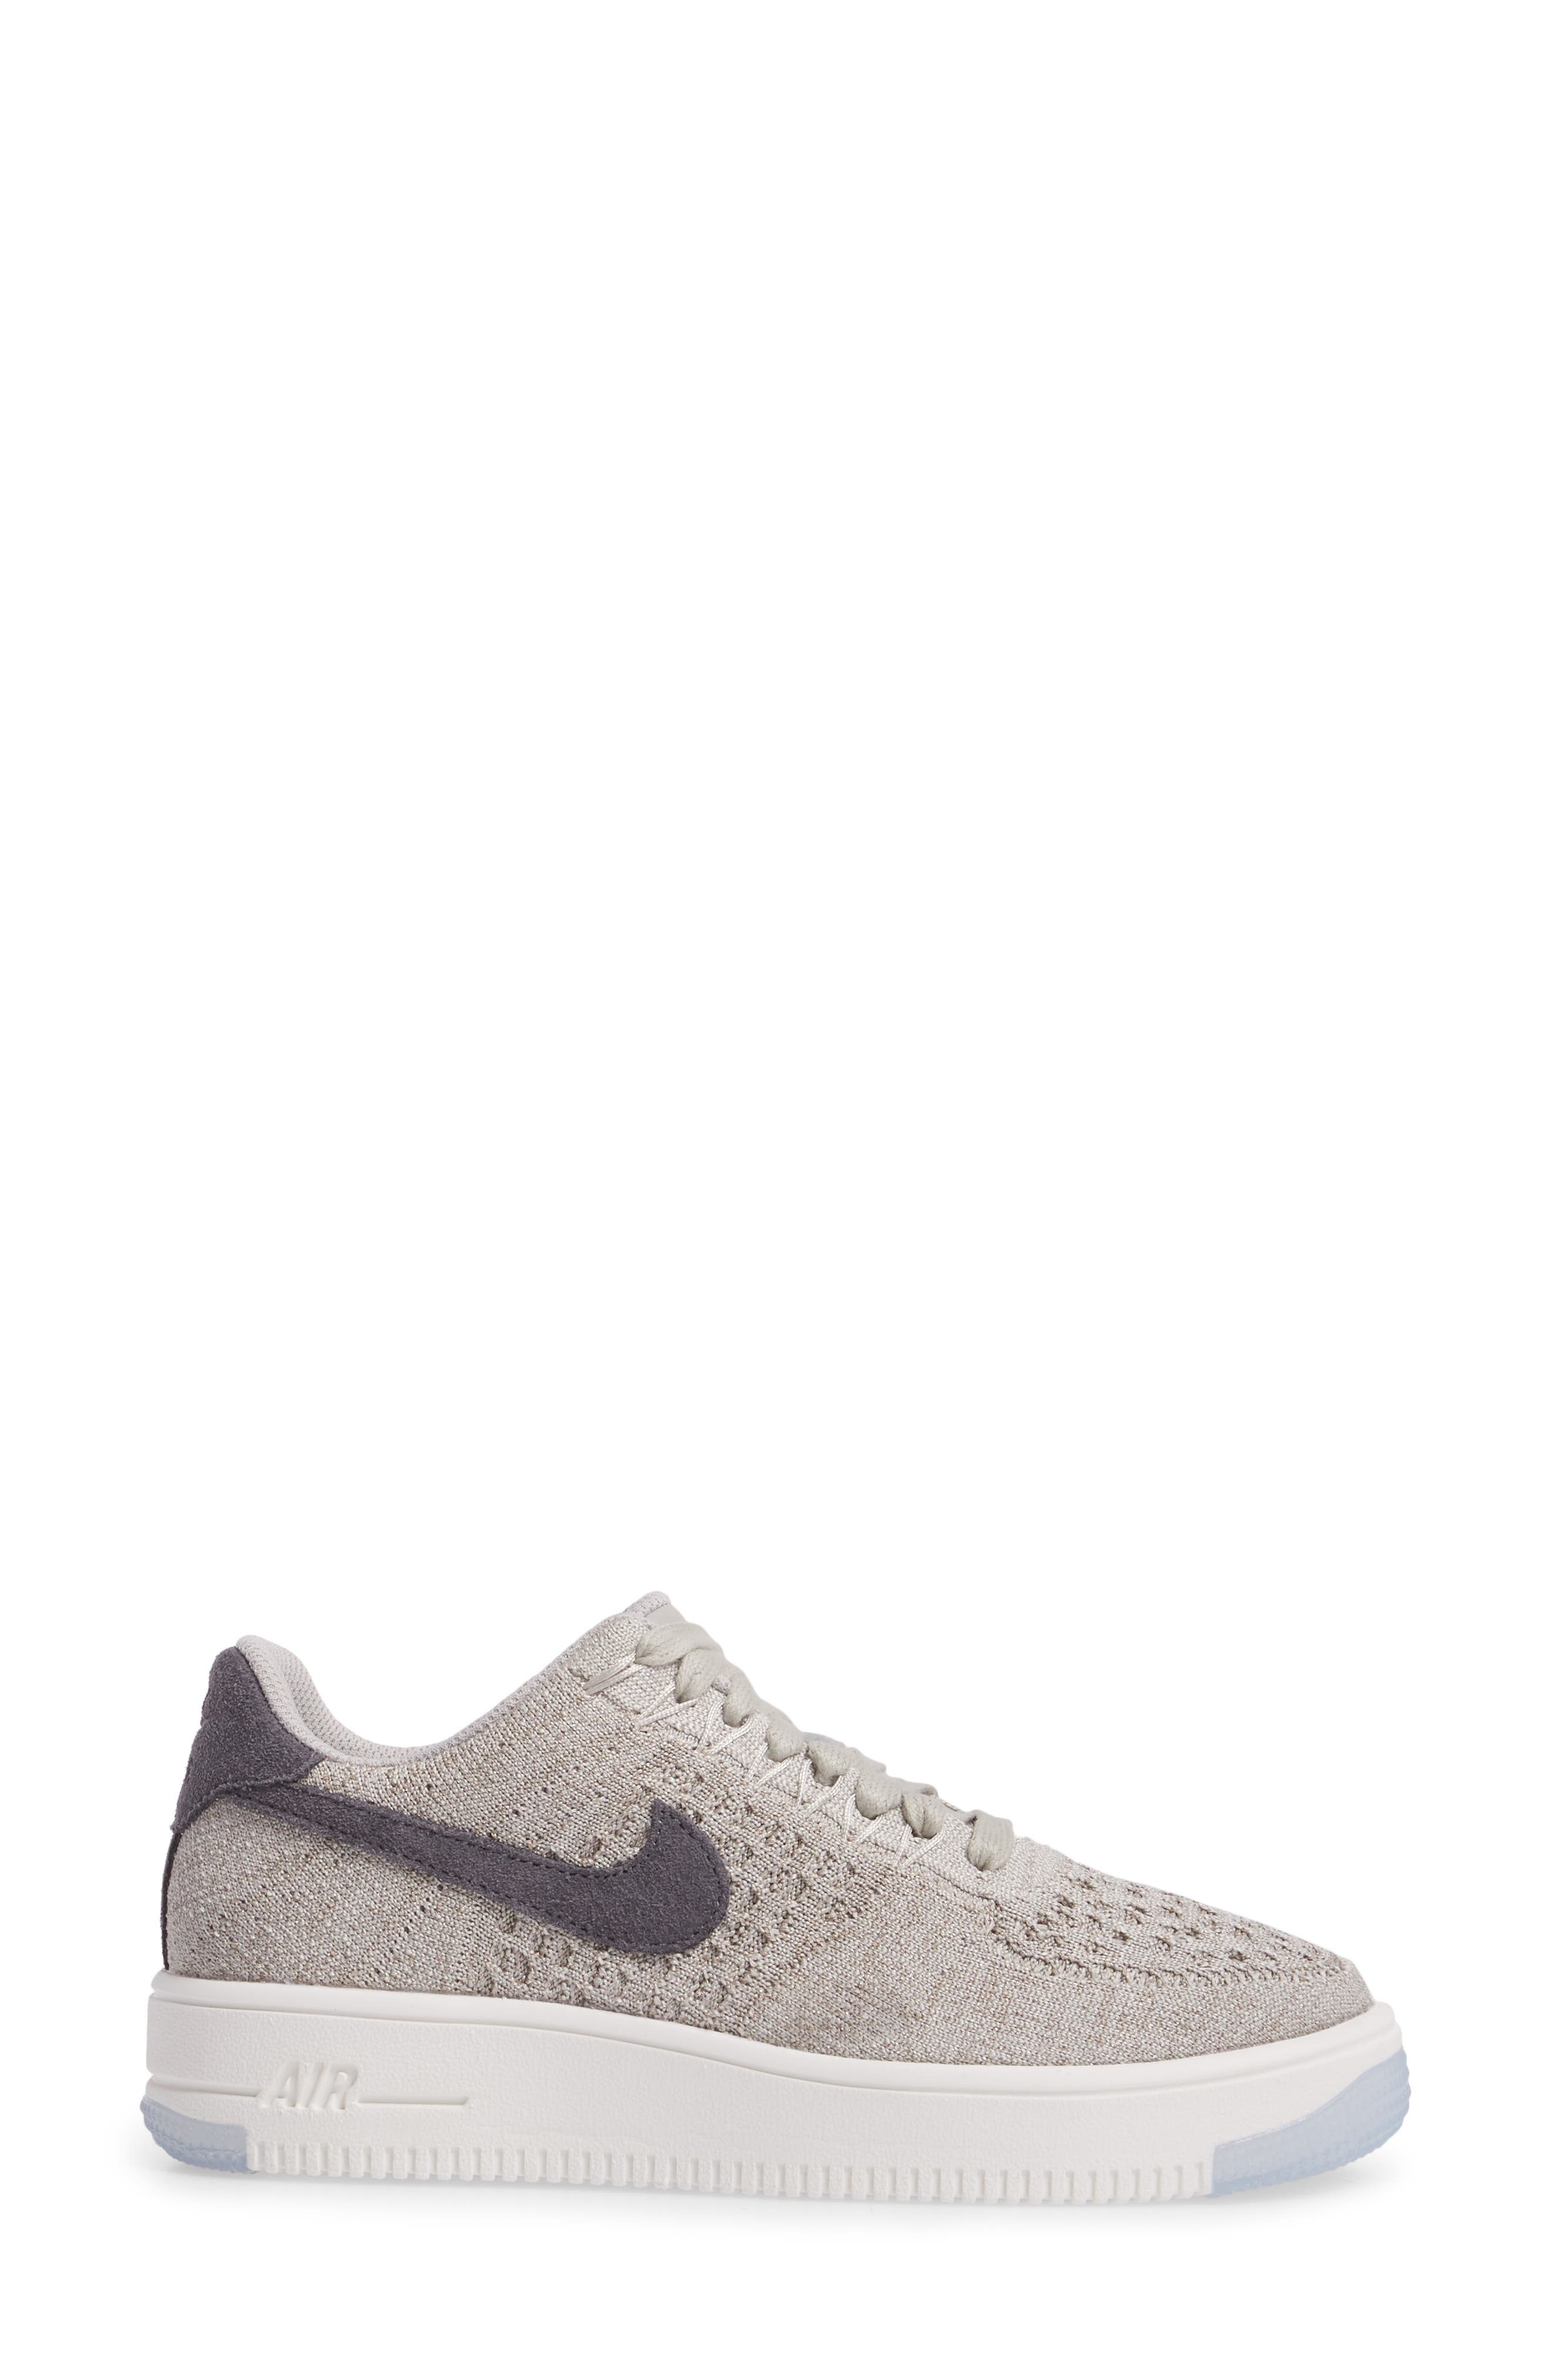 'Air Force 1 Flyknit Low' Sneaker,                             Alternate thumbnail 17, color,